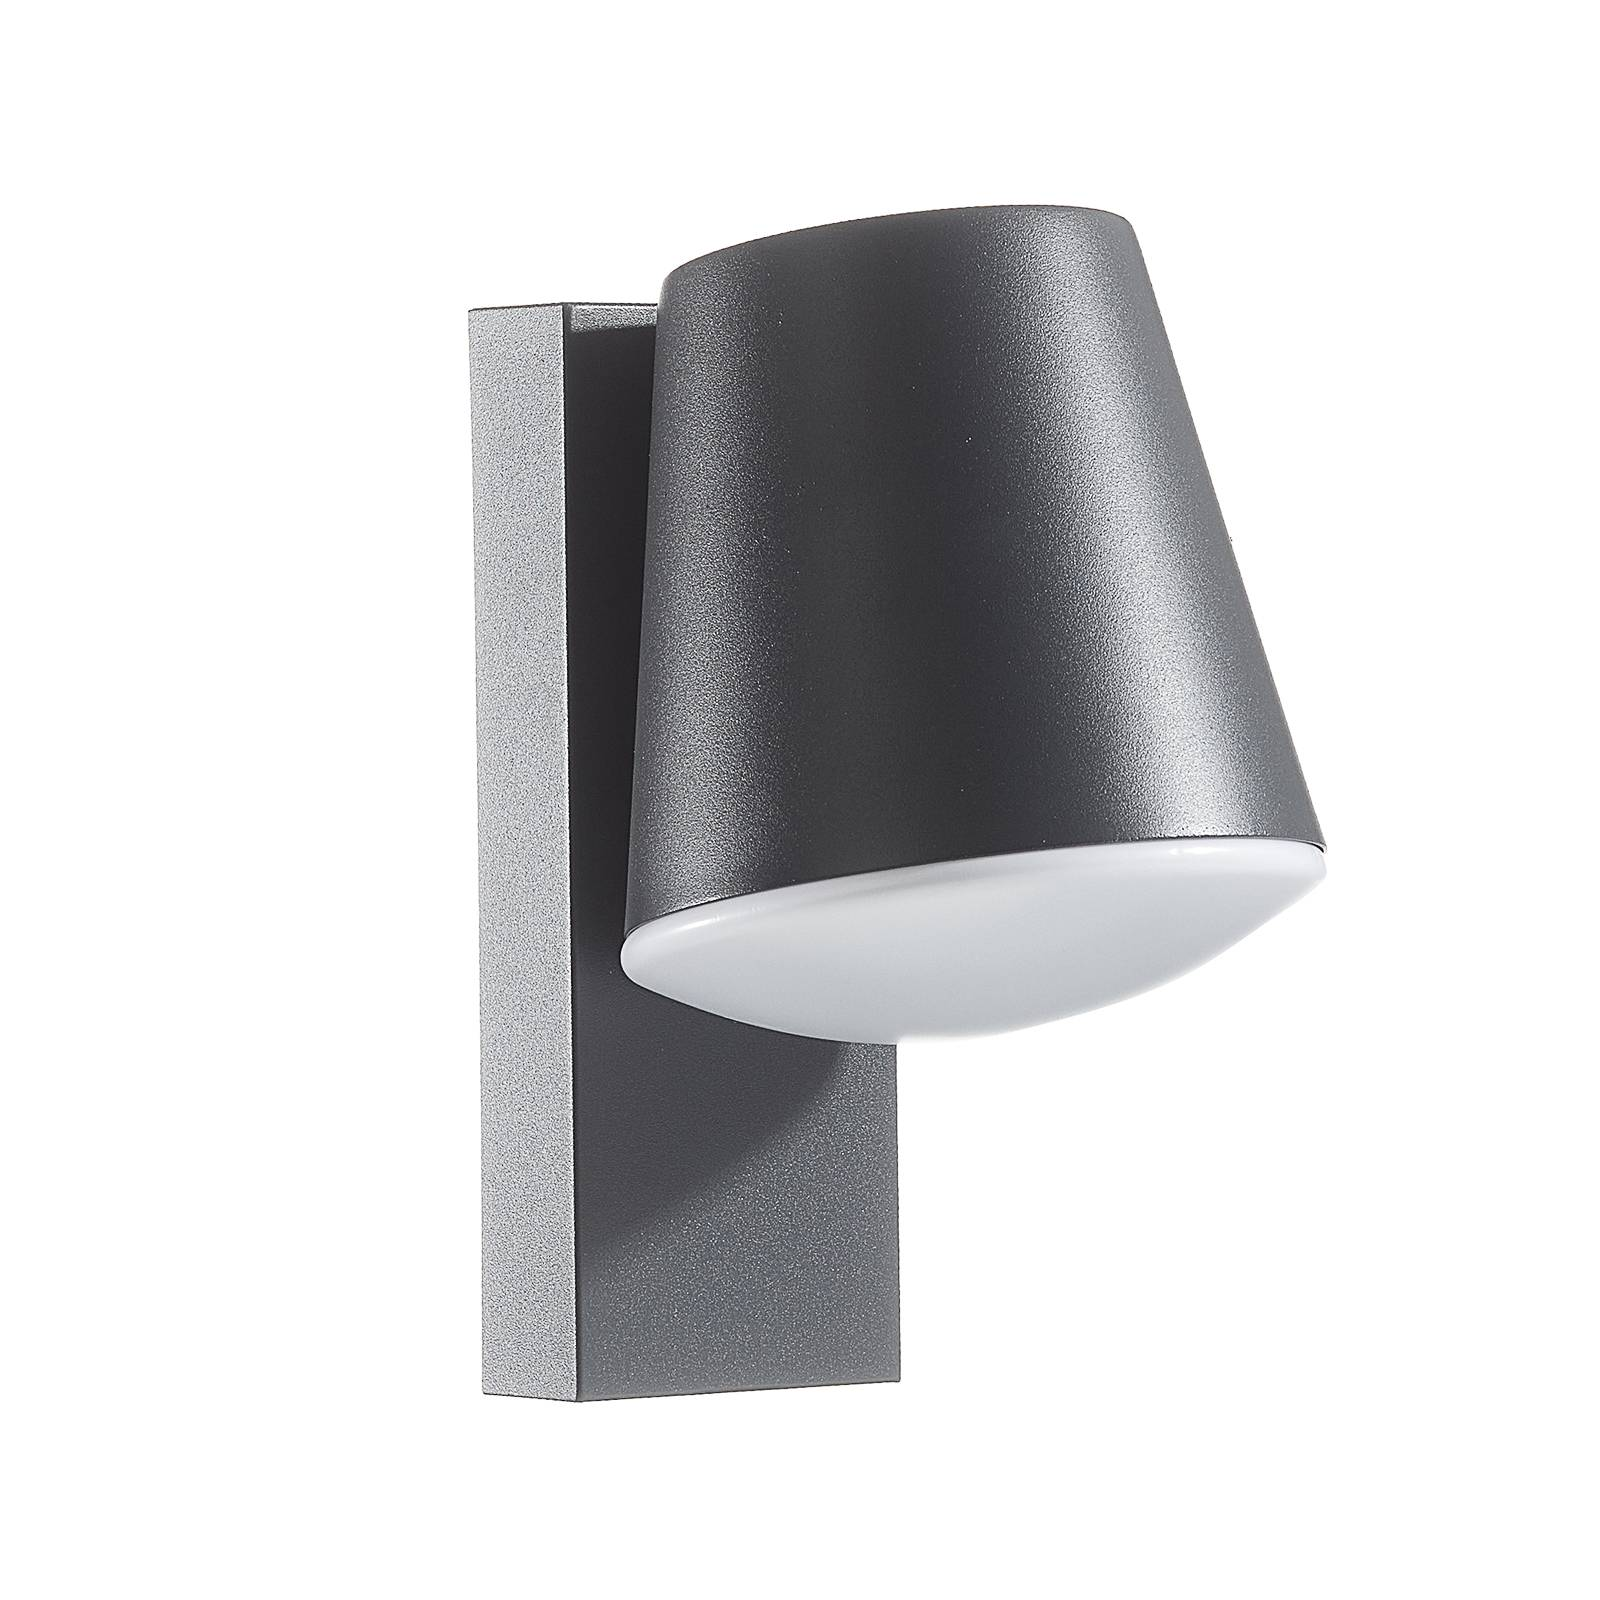 EGLO connect Caldiero-C LED-Wandlampe anthrazit von EGLO CONNECT